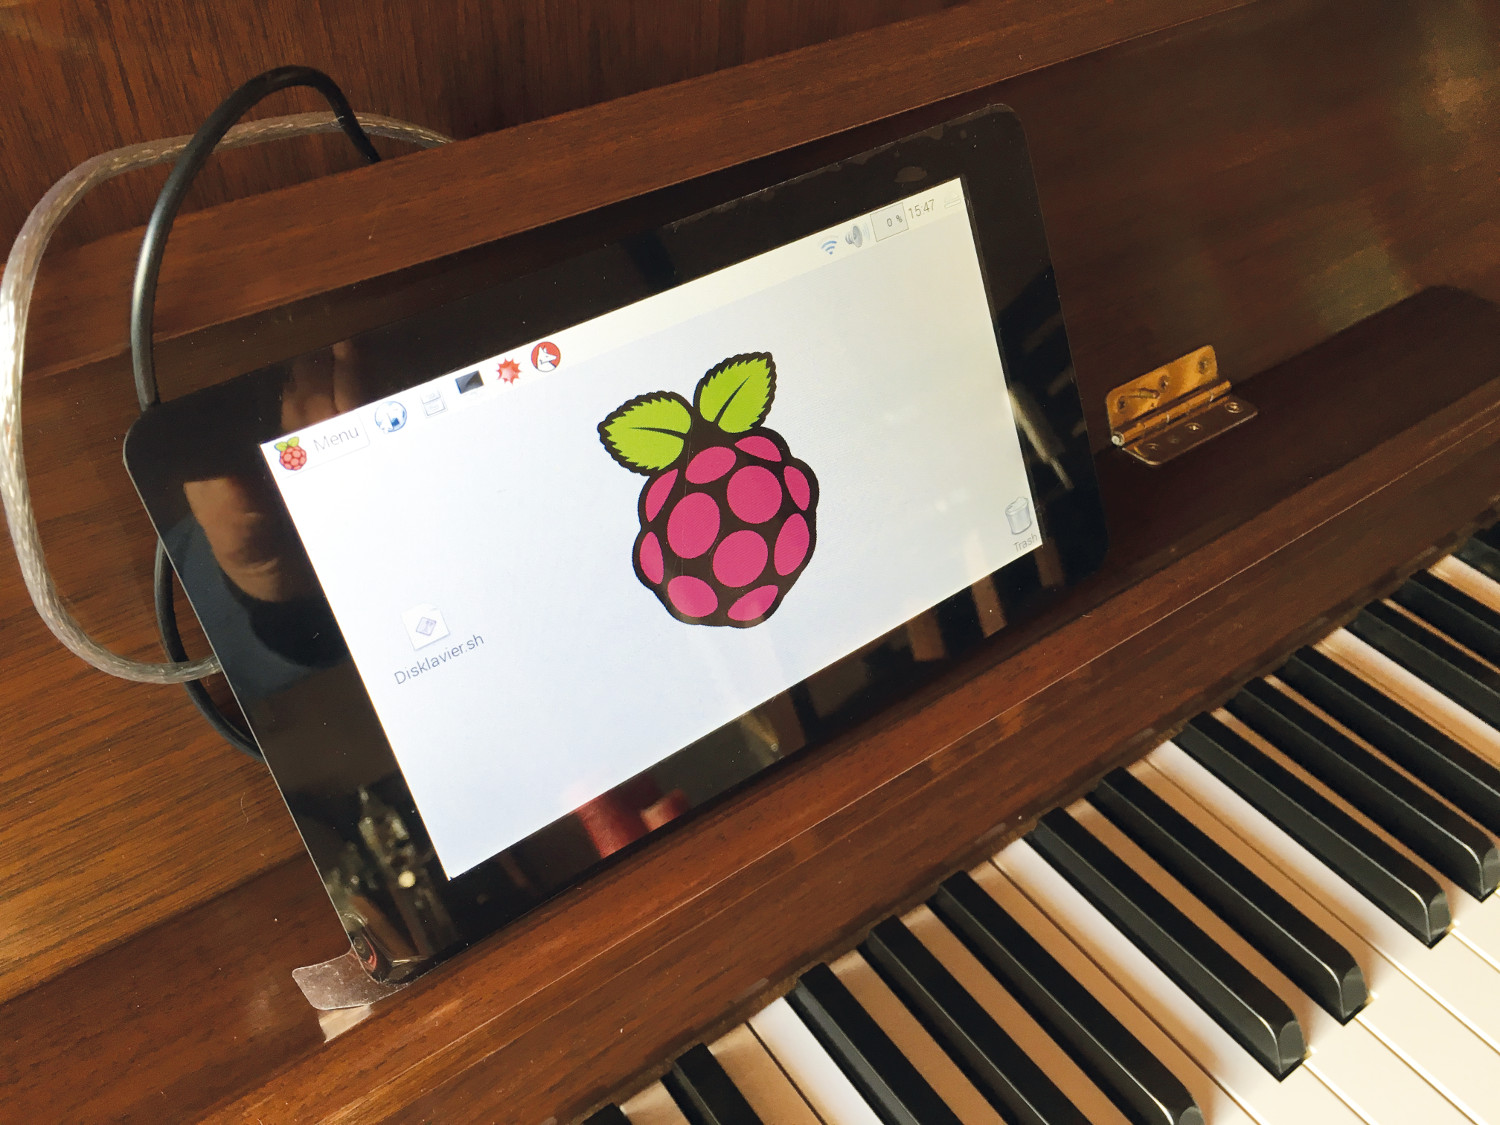 A Pi proudly playing a piano